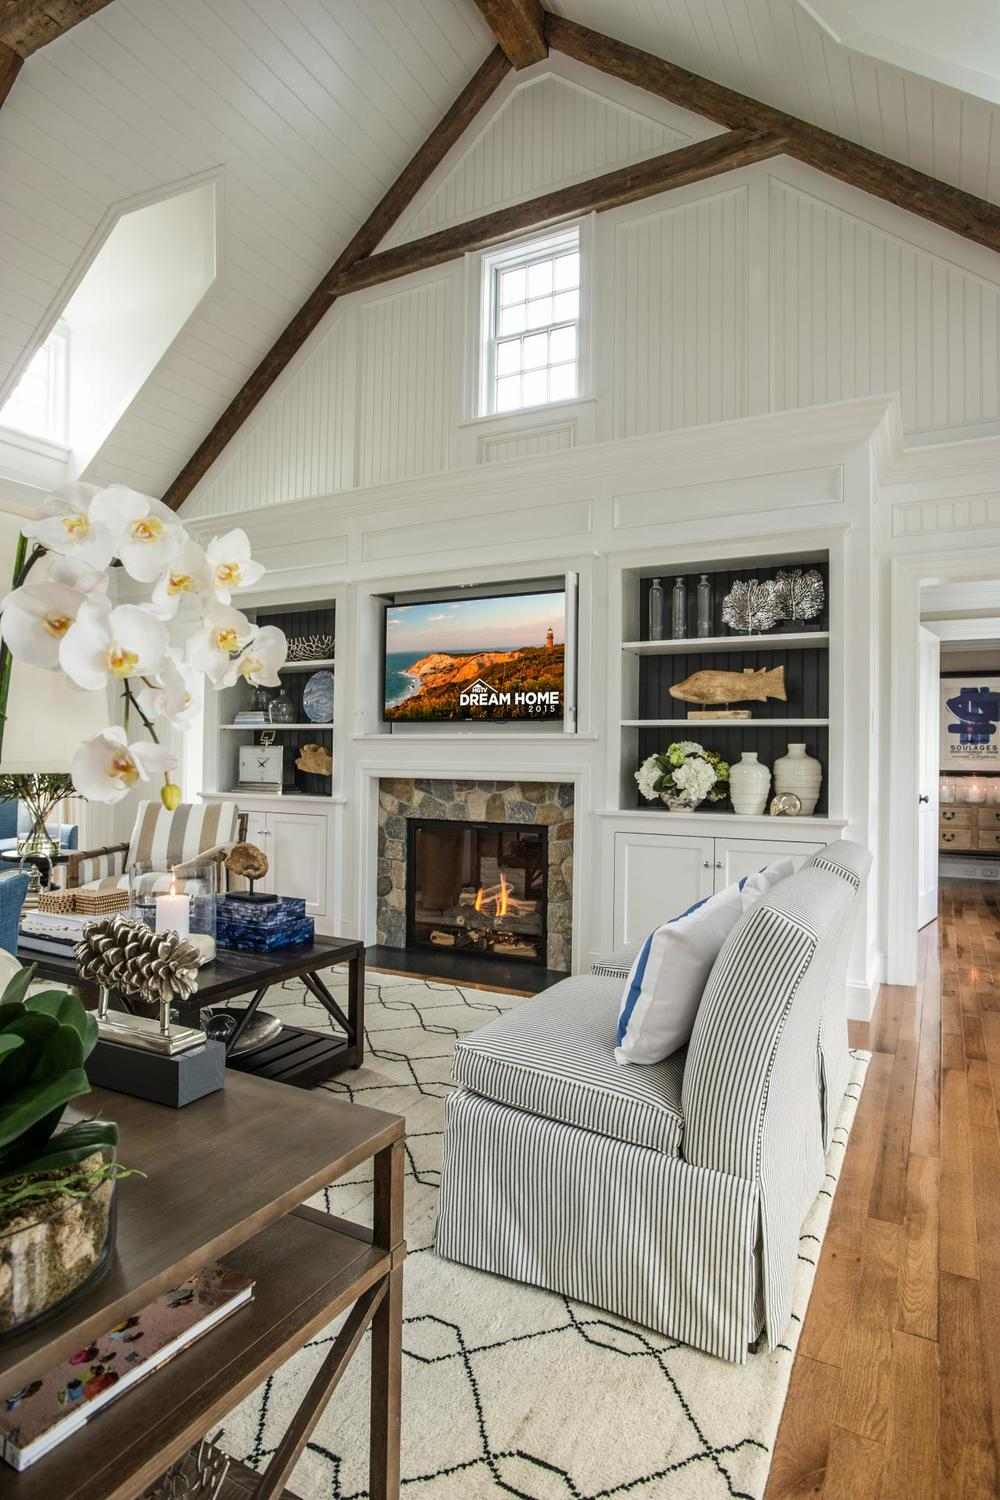 dh2015_great-room_built-in-bookcases-stone-fireplace_v.jpg.rend.hgtvcom.1280.1920.jpeg